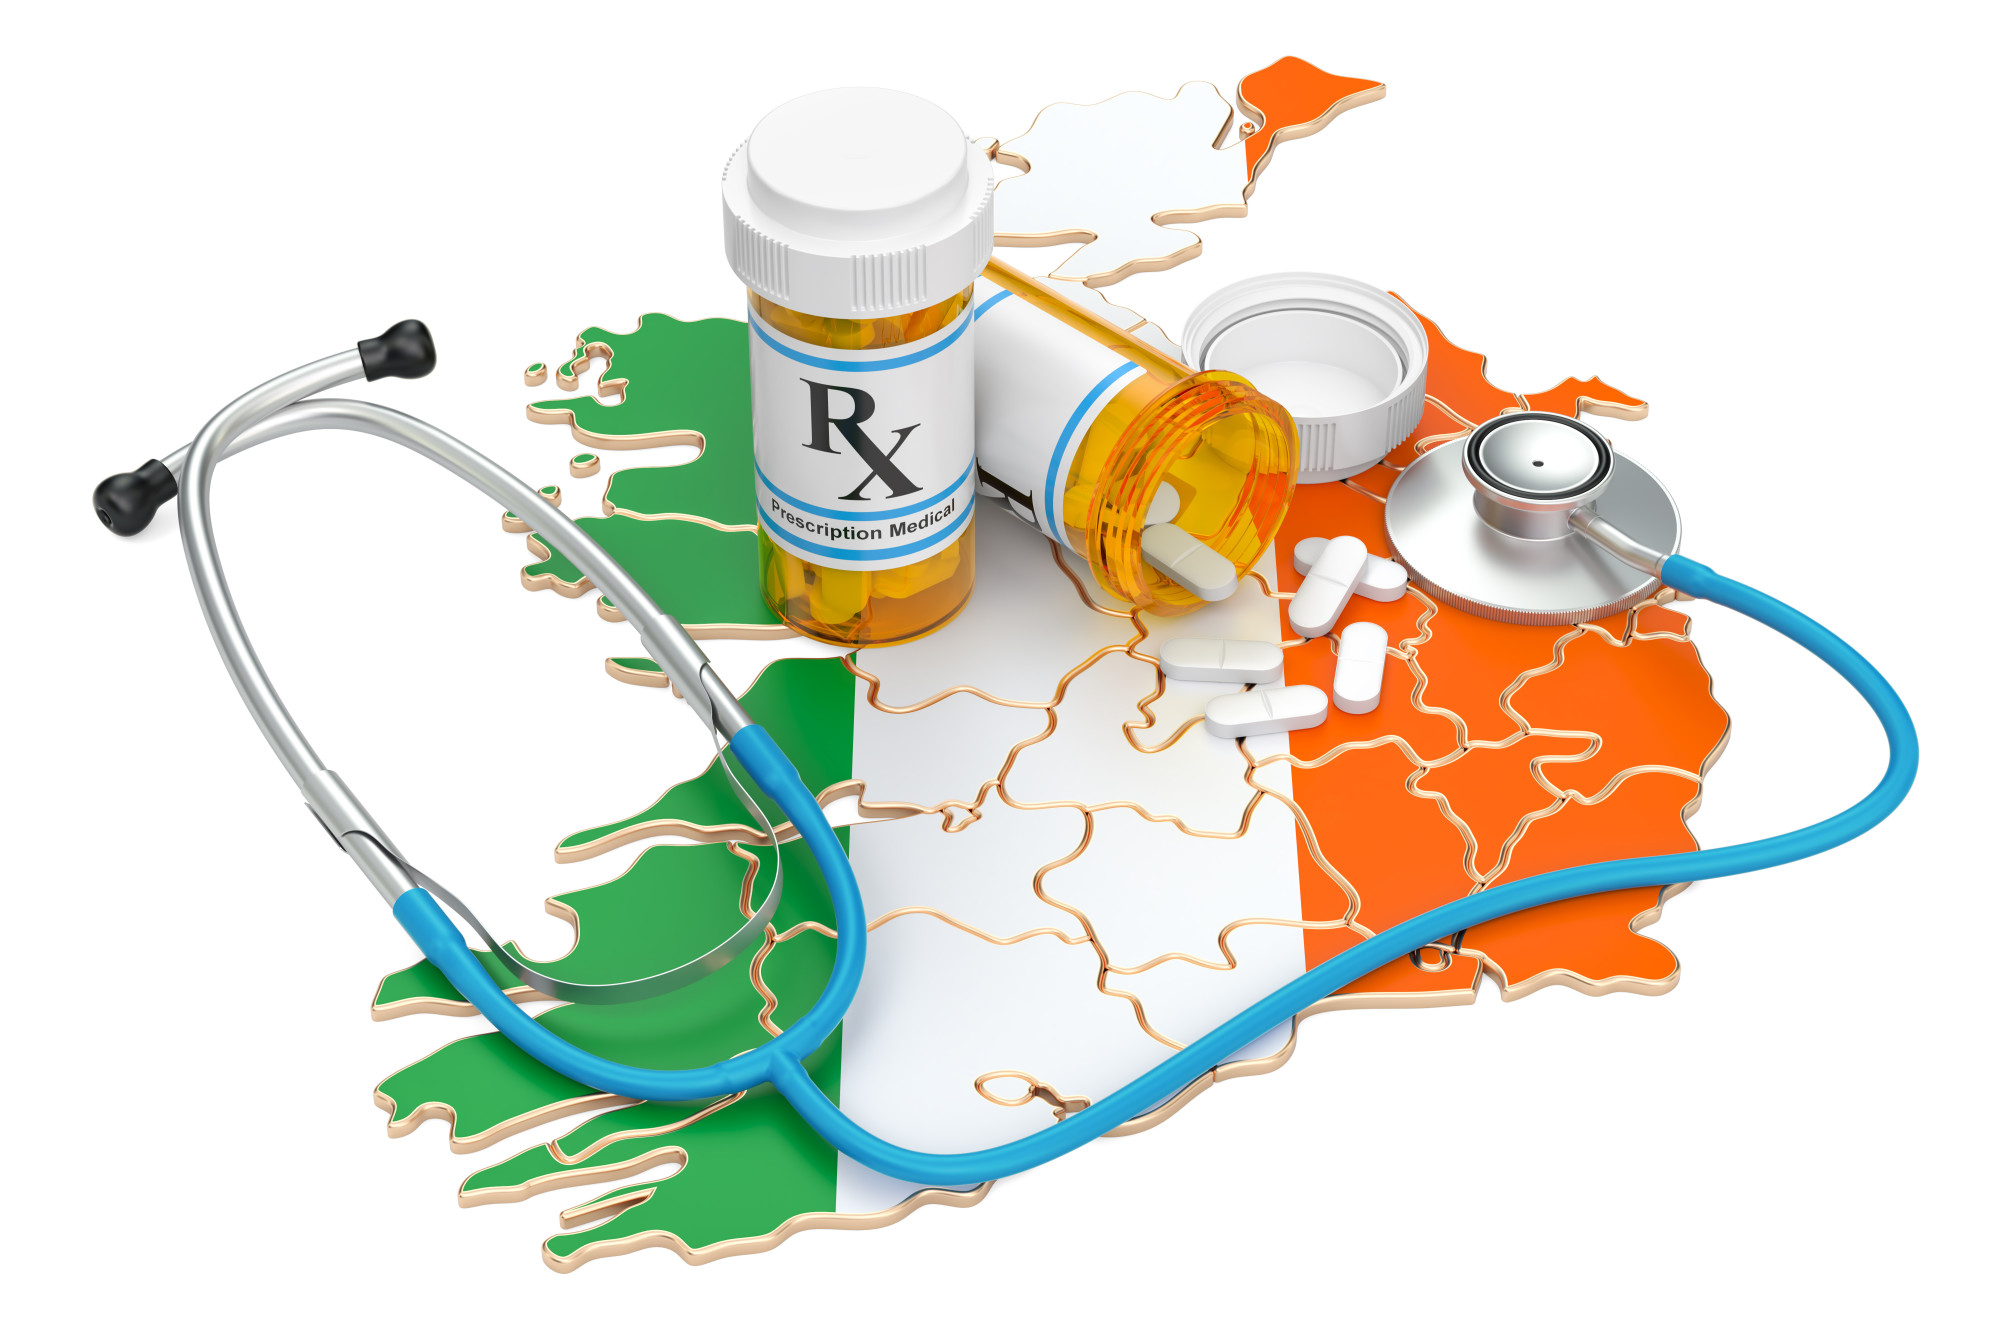 Health care system in Ireland